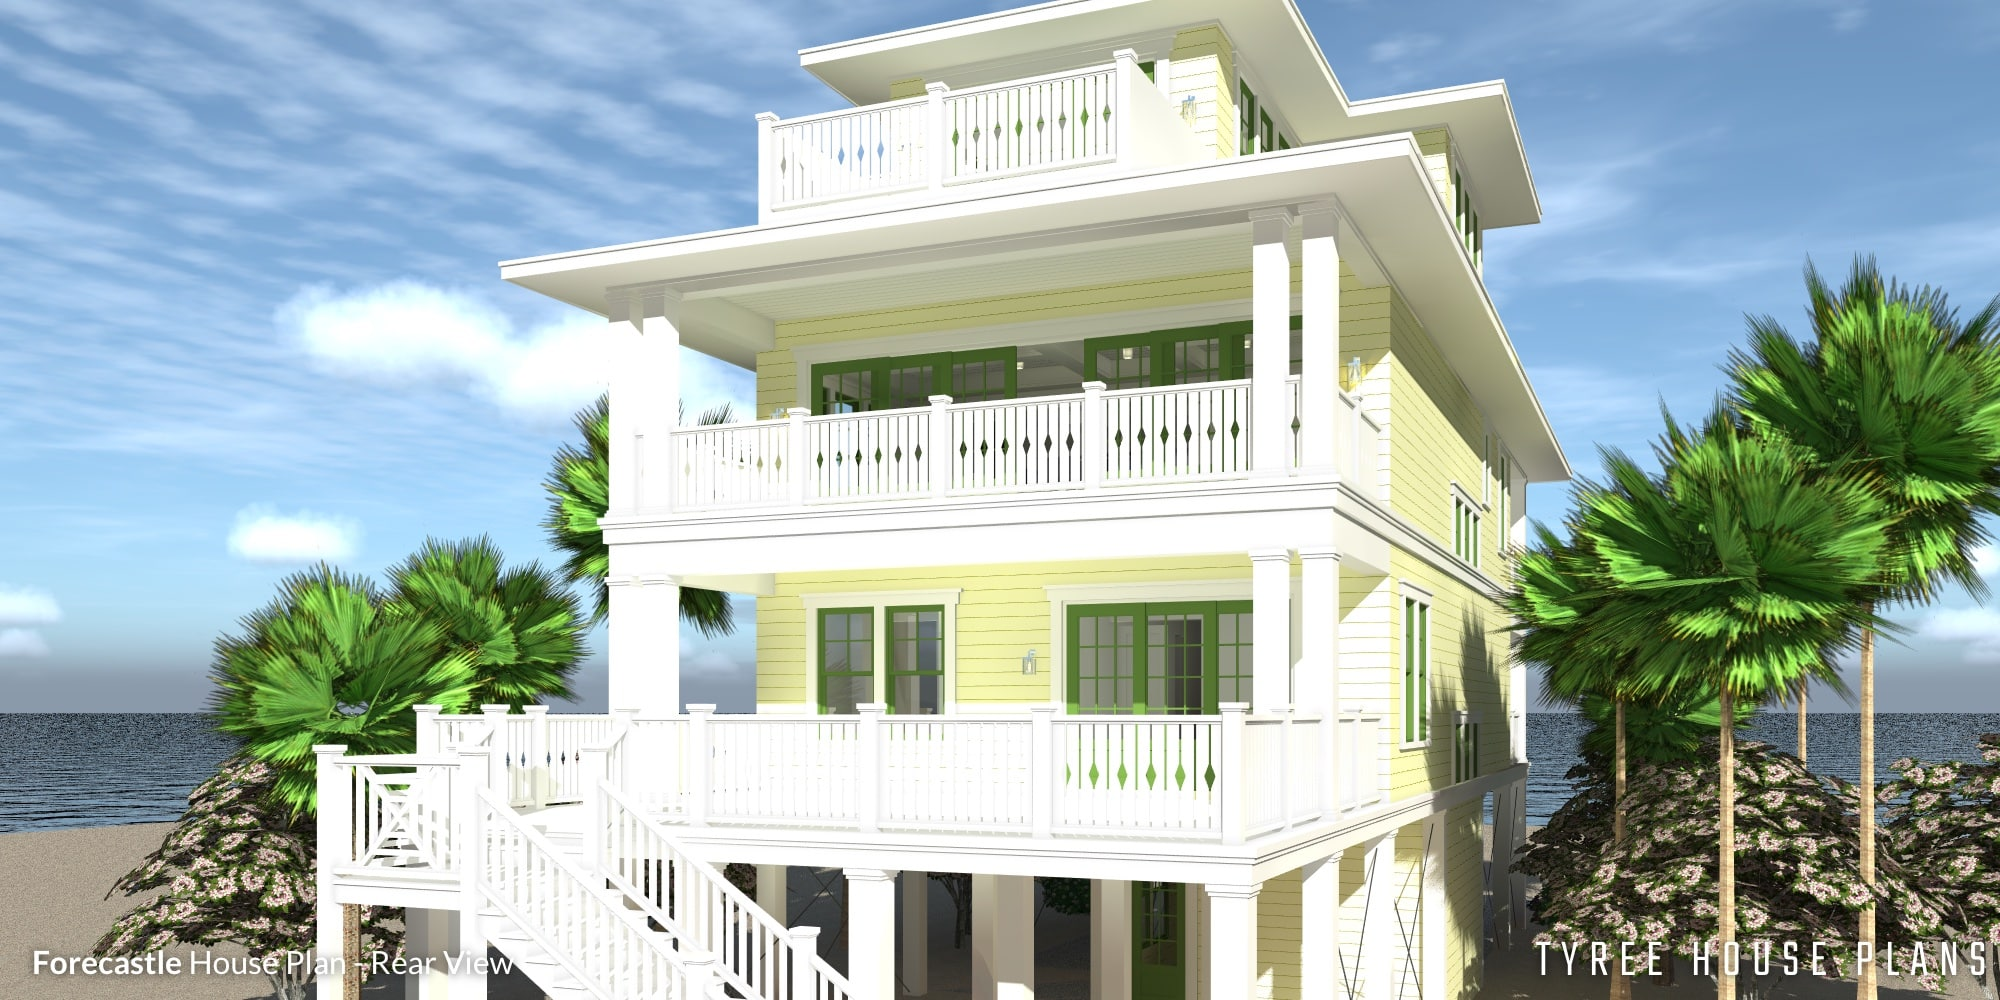 Rear View - Forecastle House Plan by Tyree House Plans